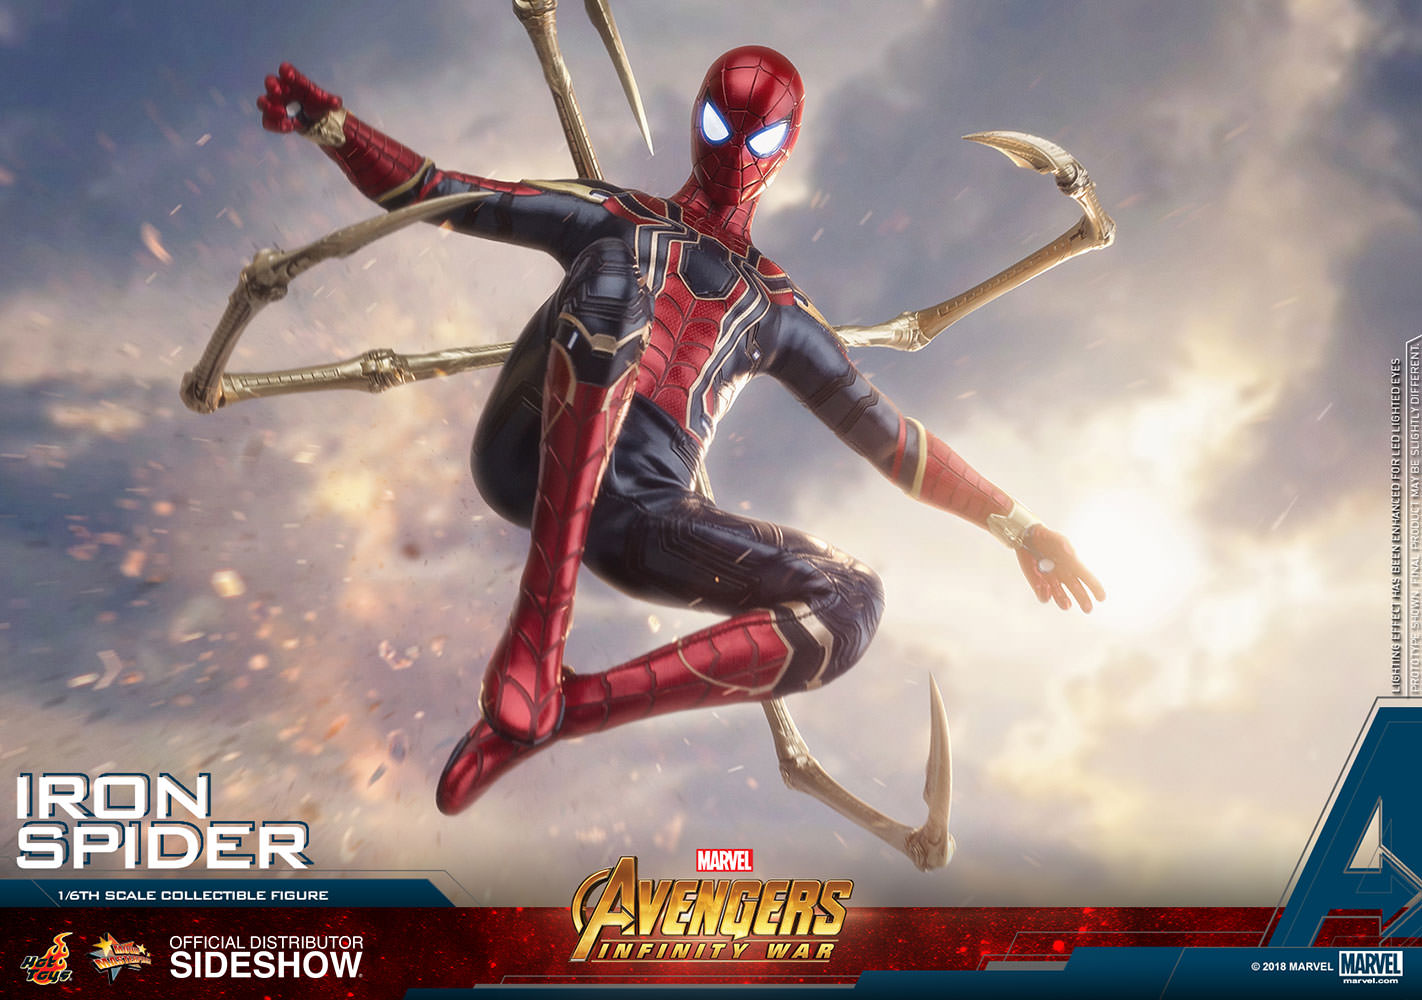 marvel-avengers-infinity-war-iron-spider-sixth-scale-hot-toys-903471-22